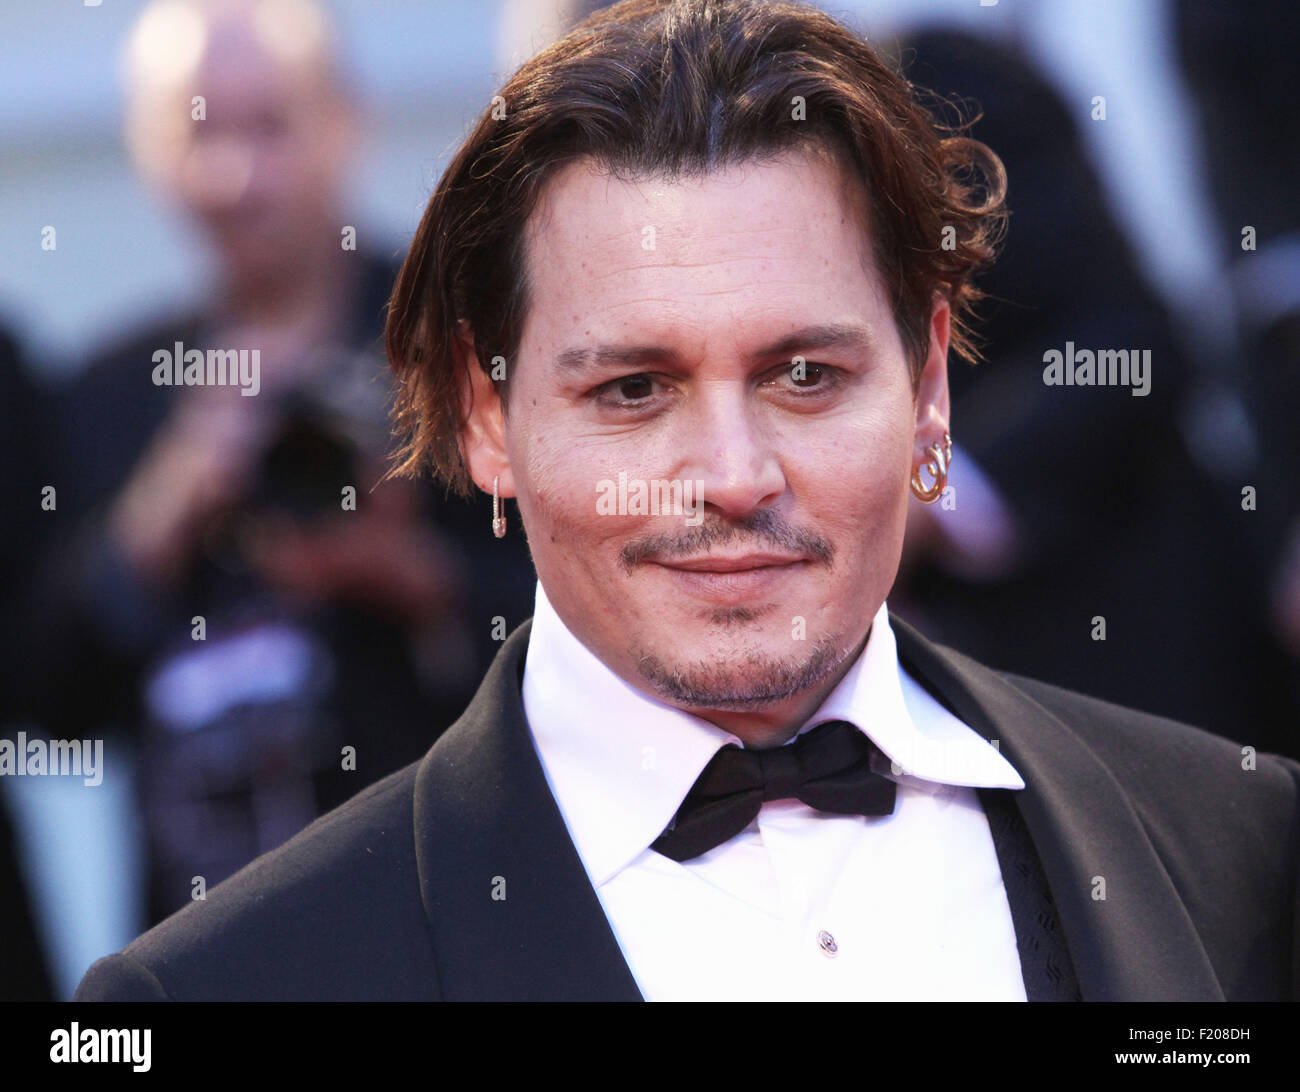 Venice, Italy. 4th September, 2015. Actor Johnny Depp at the red carpet of the movie 'The Danish Girl'  - Stock Image